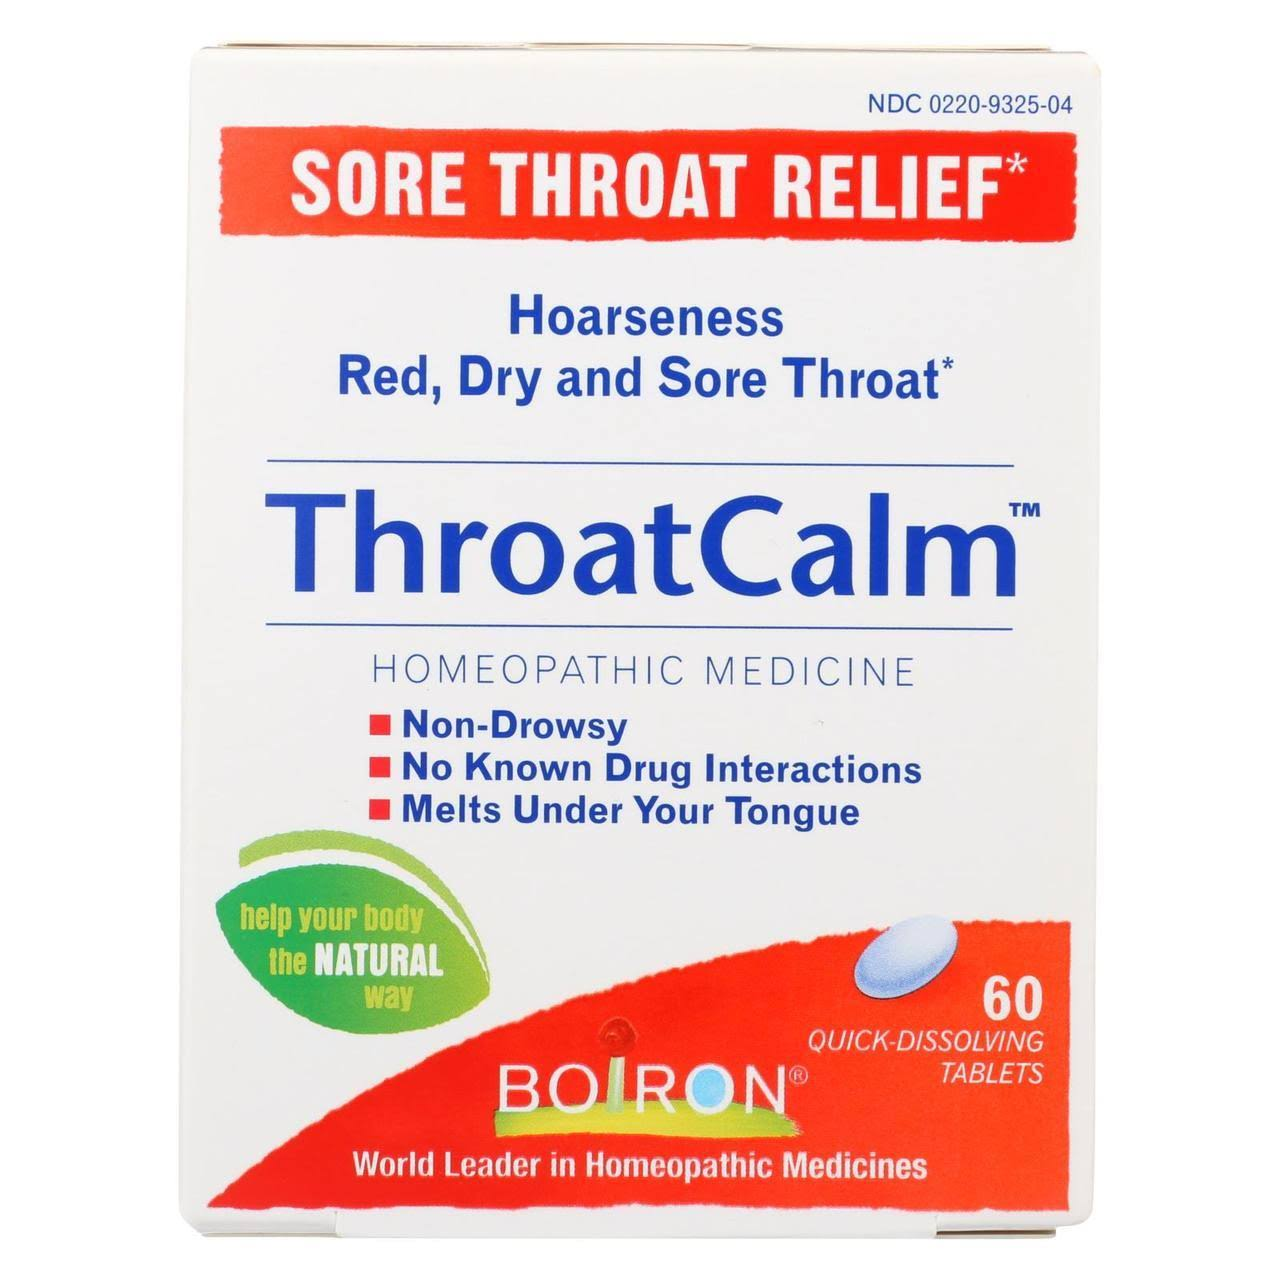 Boiron Throat Calm Sore Throat Relief Tablet - 60ct